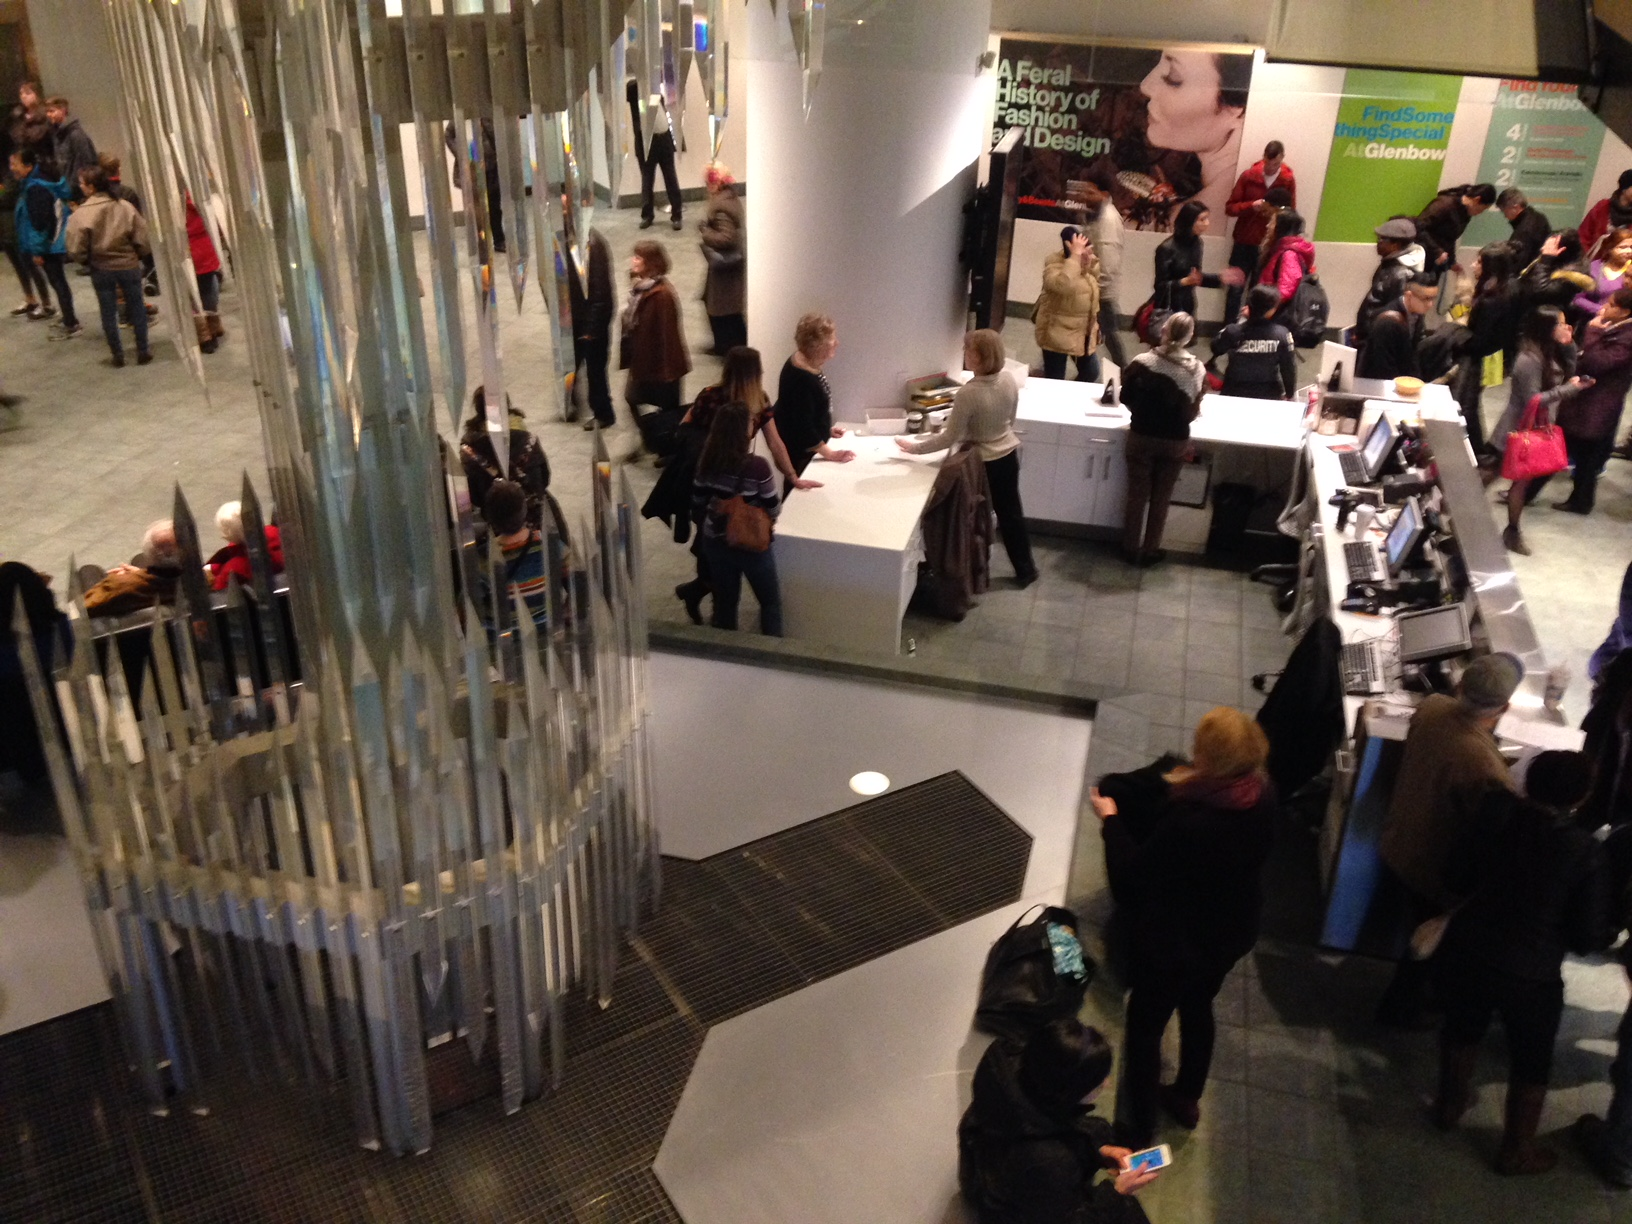 Free First Thursdays at the Glenbow have become very popular.